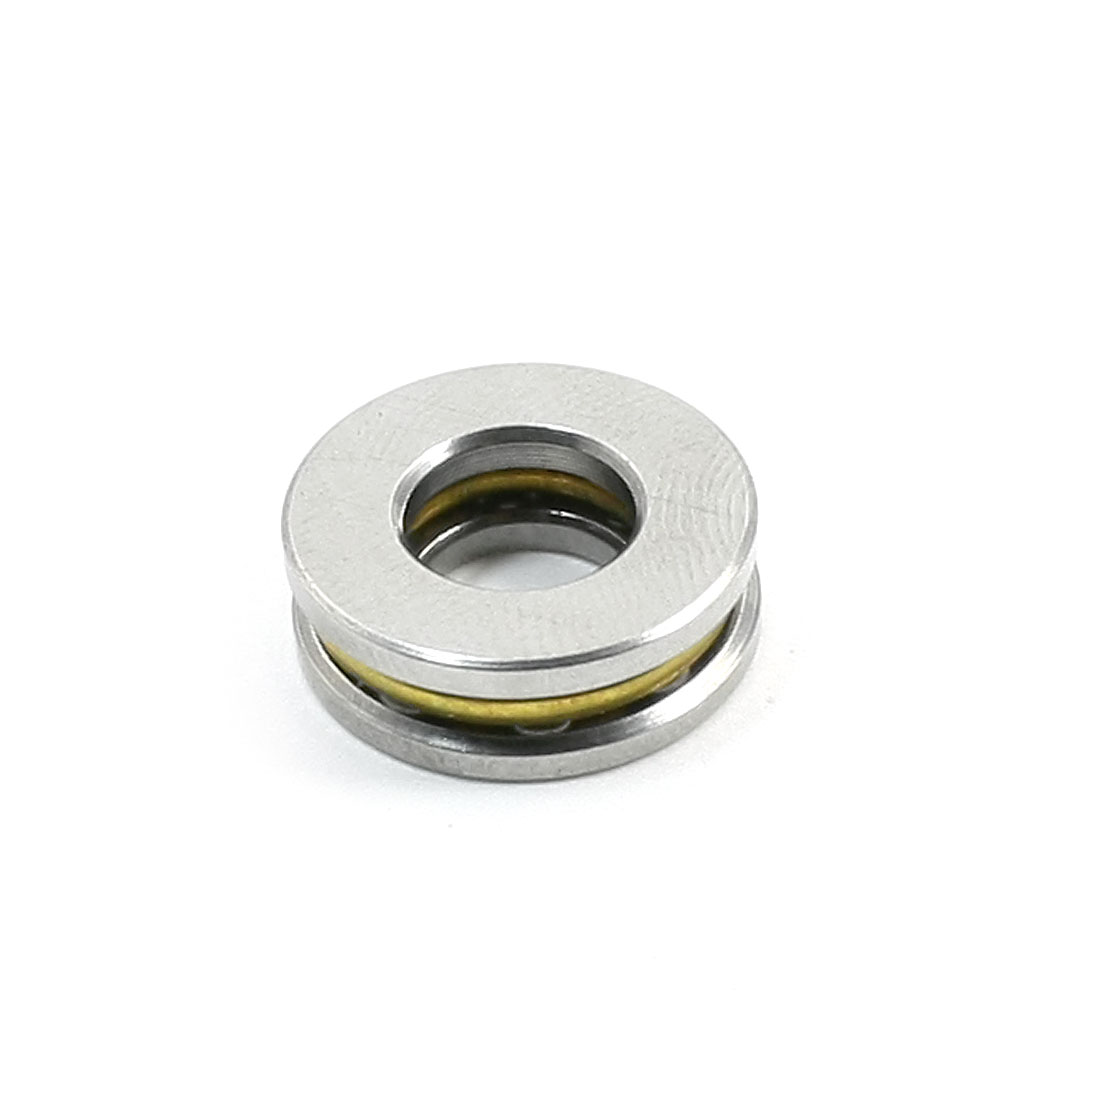 Spare-Parts-15mm-x-7mm-x-5mm-Silver-Tone-Ball-Thrust-Bearing